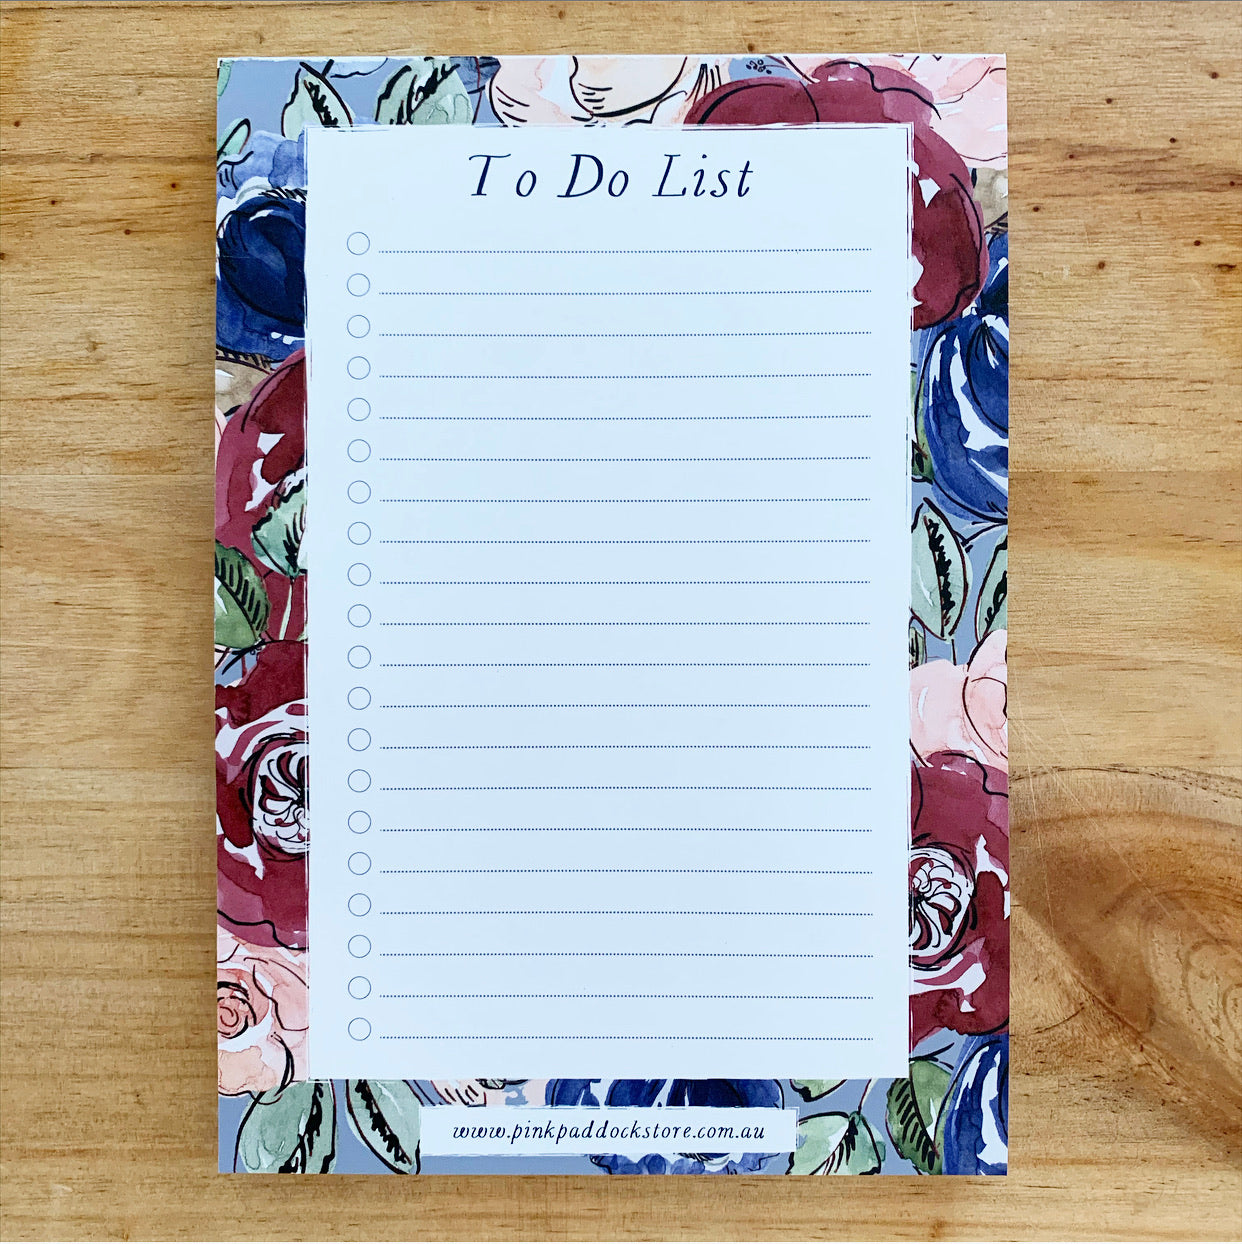 Rose 'To Do List' A5 Notepad